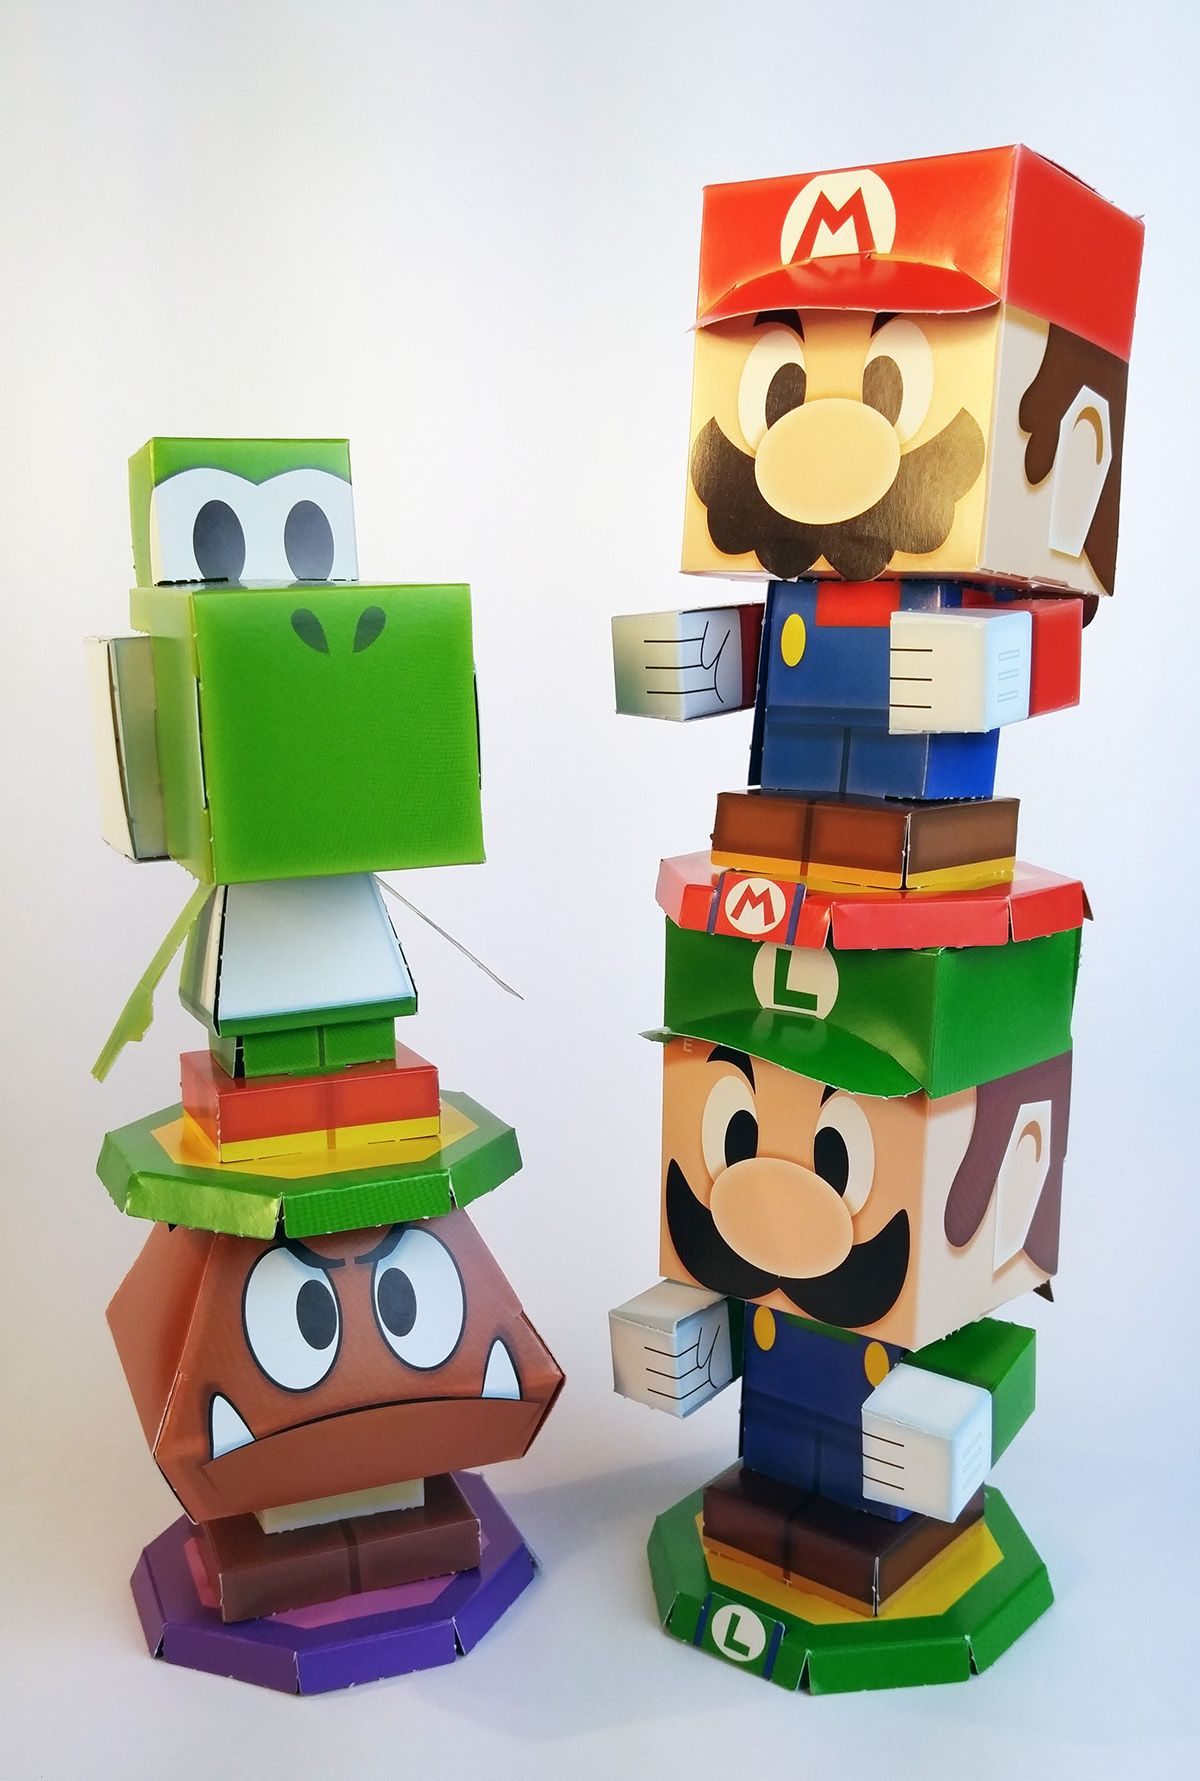 Mario Luigi Paper Jam Papercraft Premium On Behance In 2020